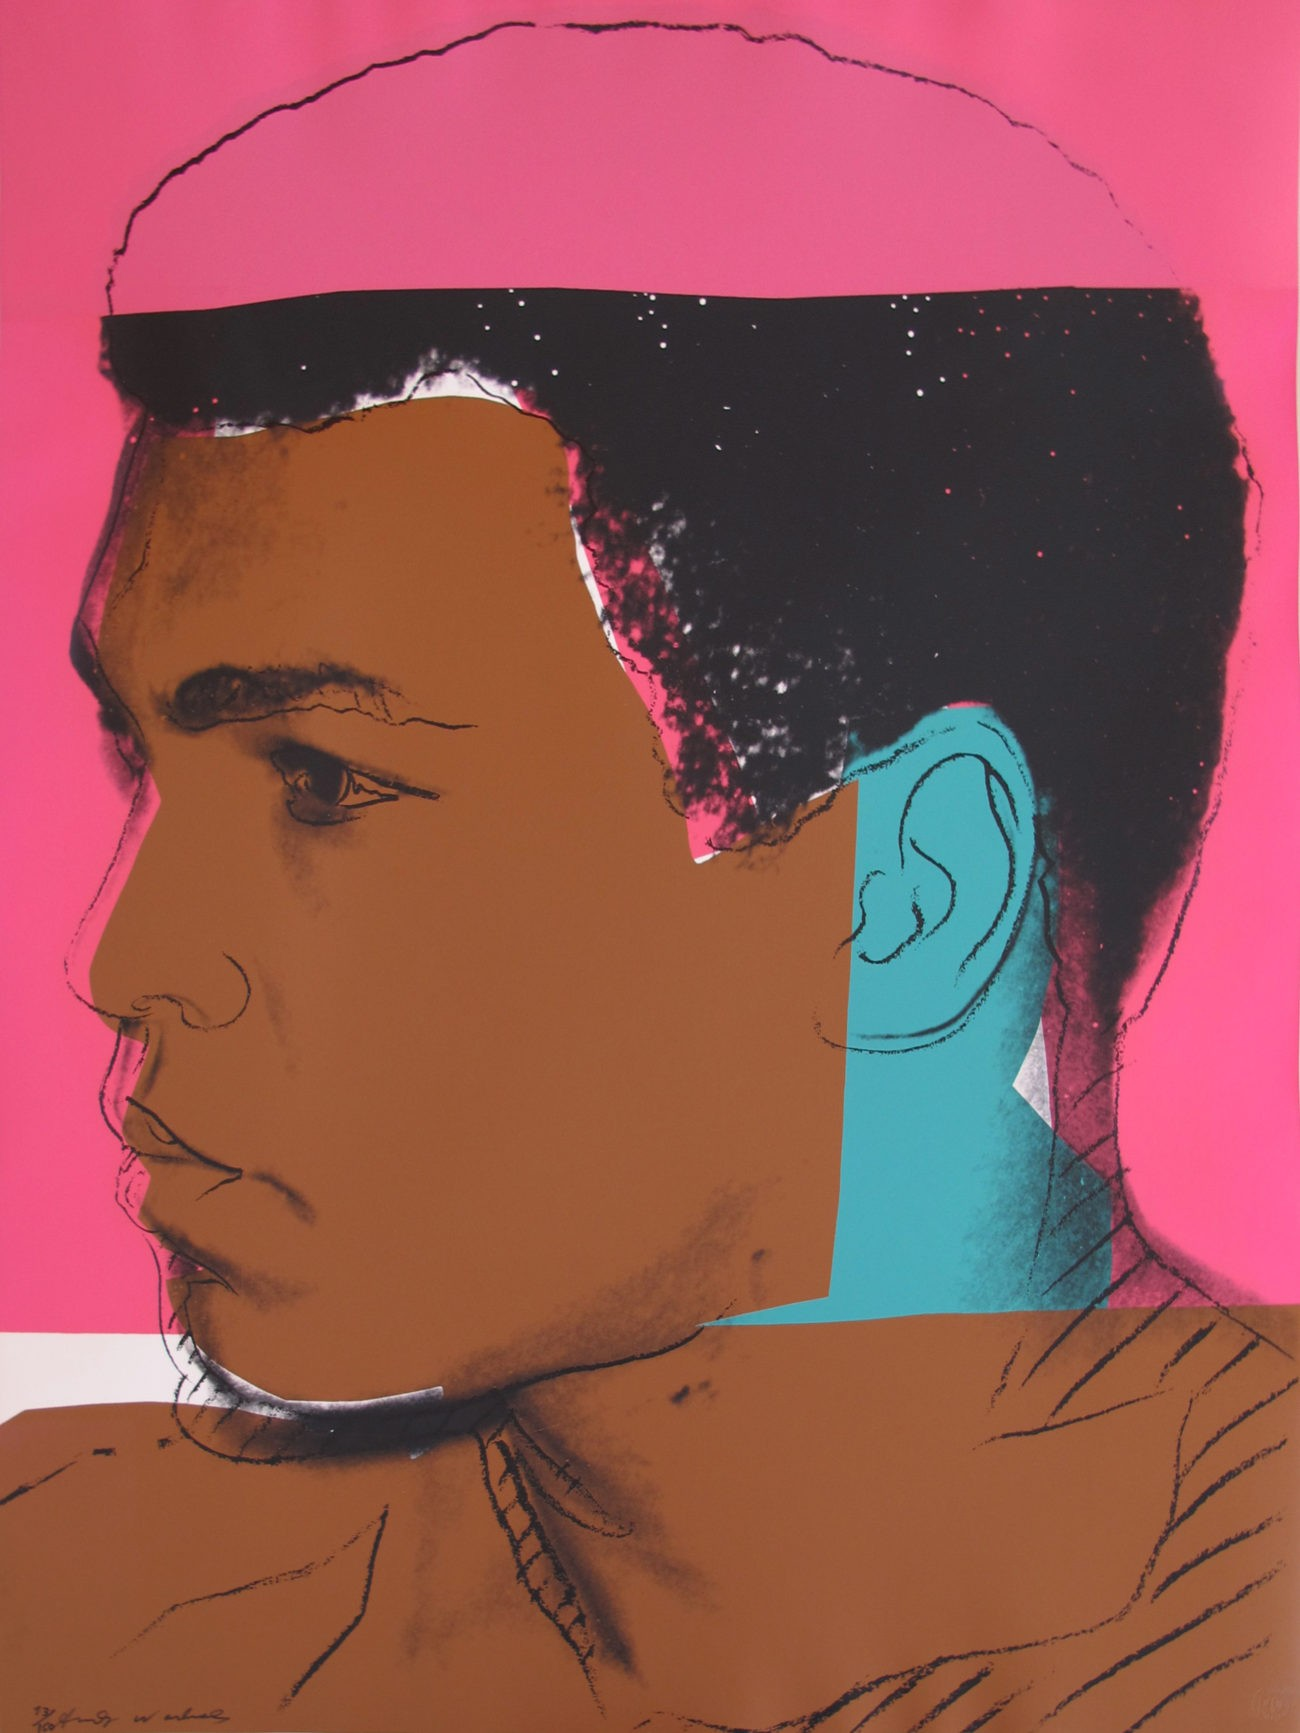 Andy Warhol | Muhammad Ali 79 | 1978 | Image of Artists' work.